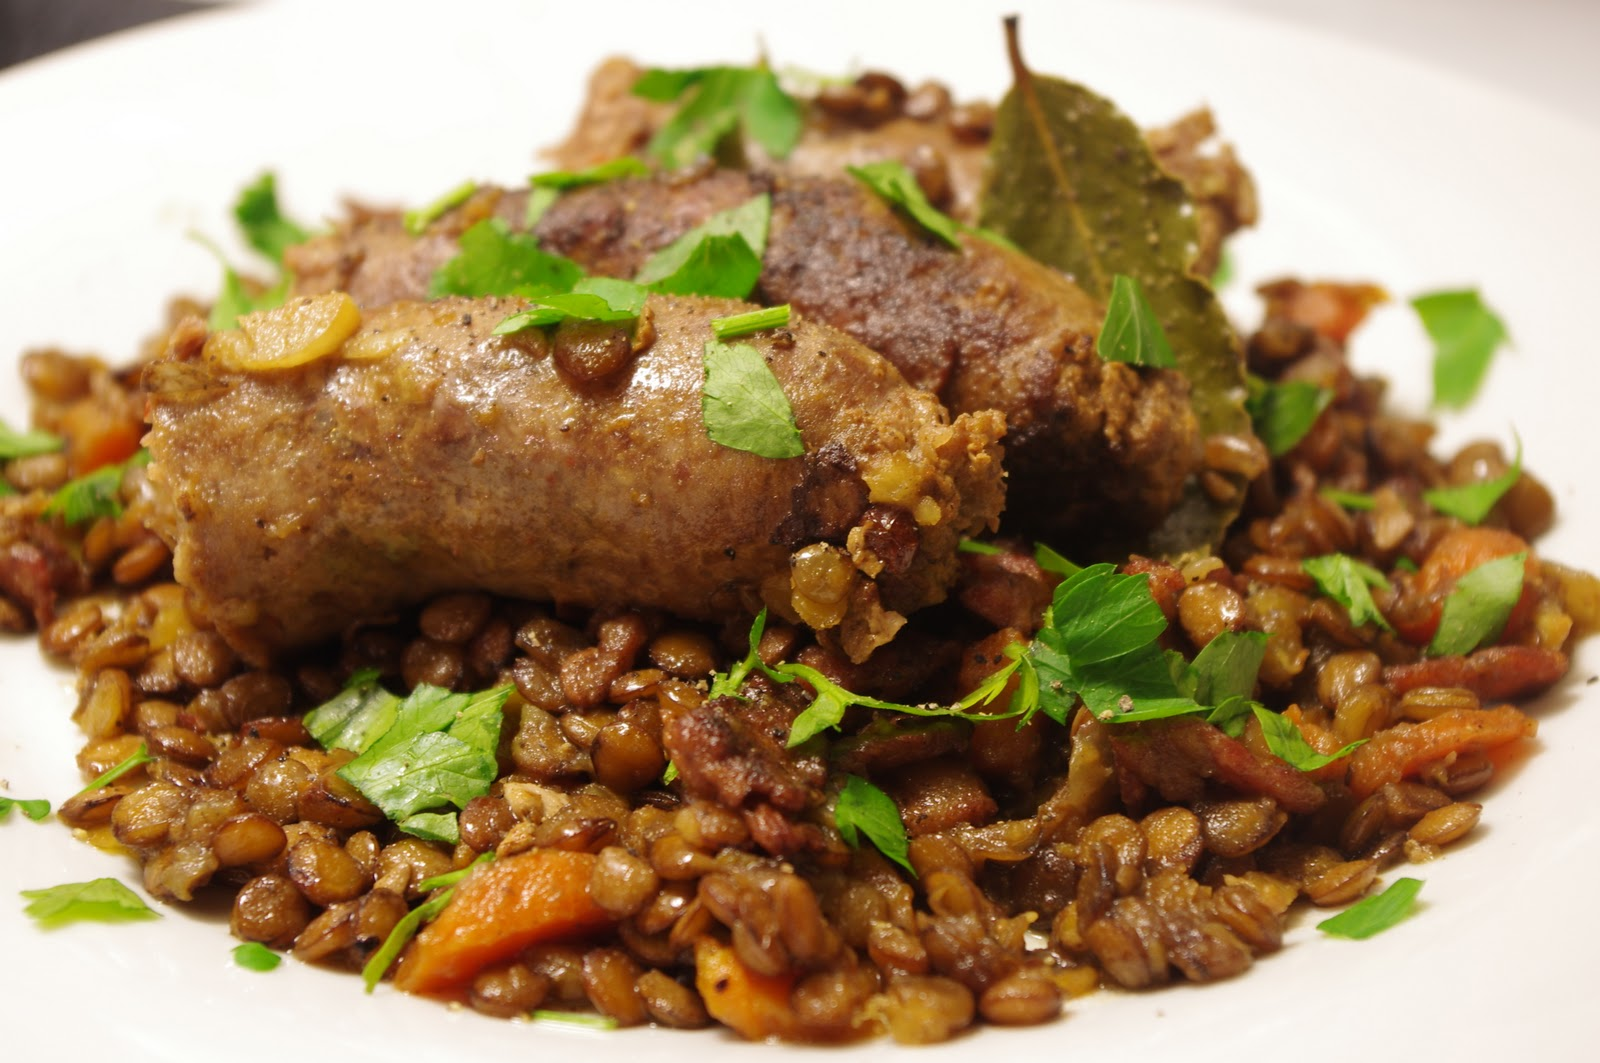 Italian Sausages With Lentils | Cook Gordon Ramsay